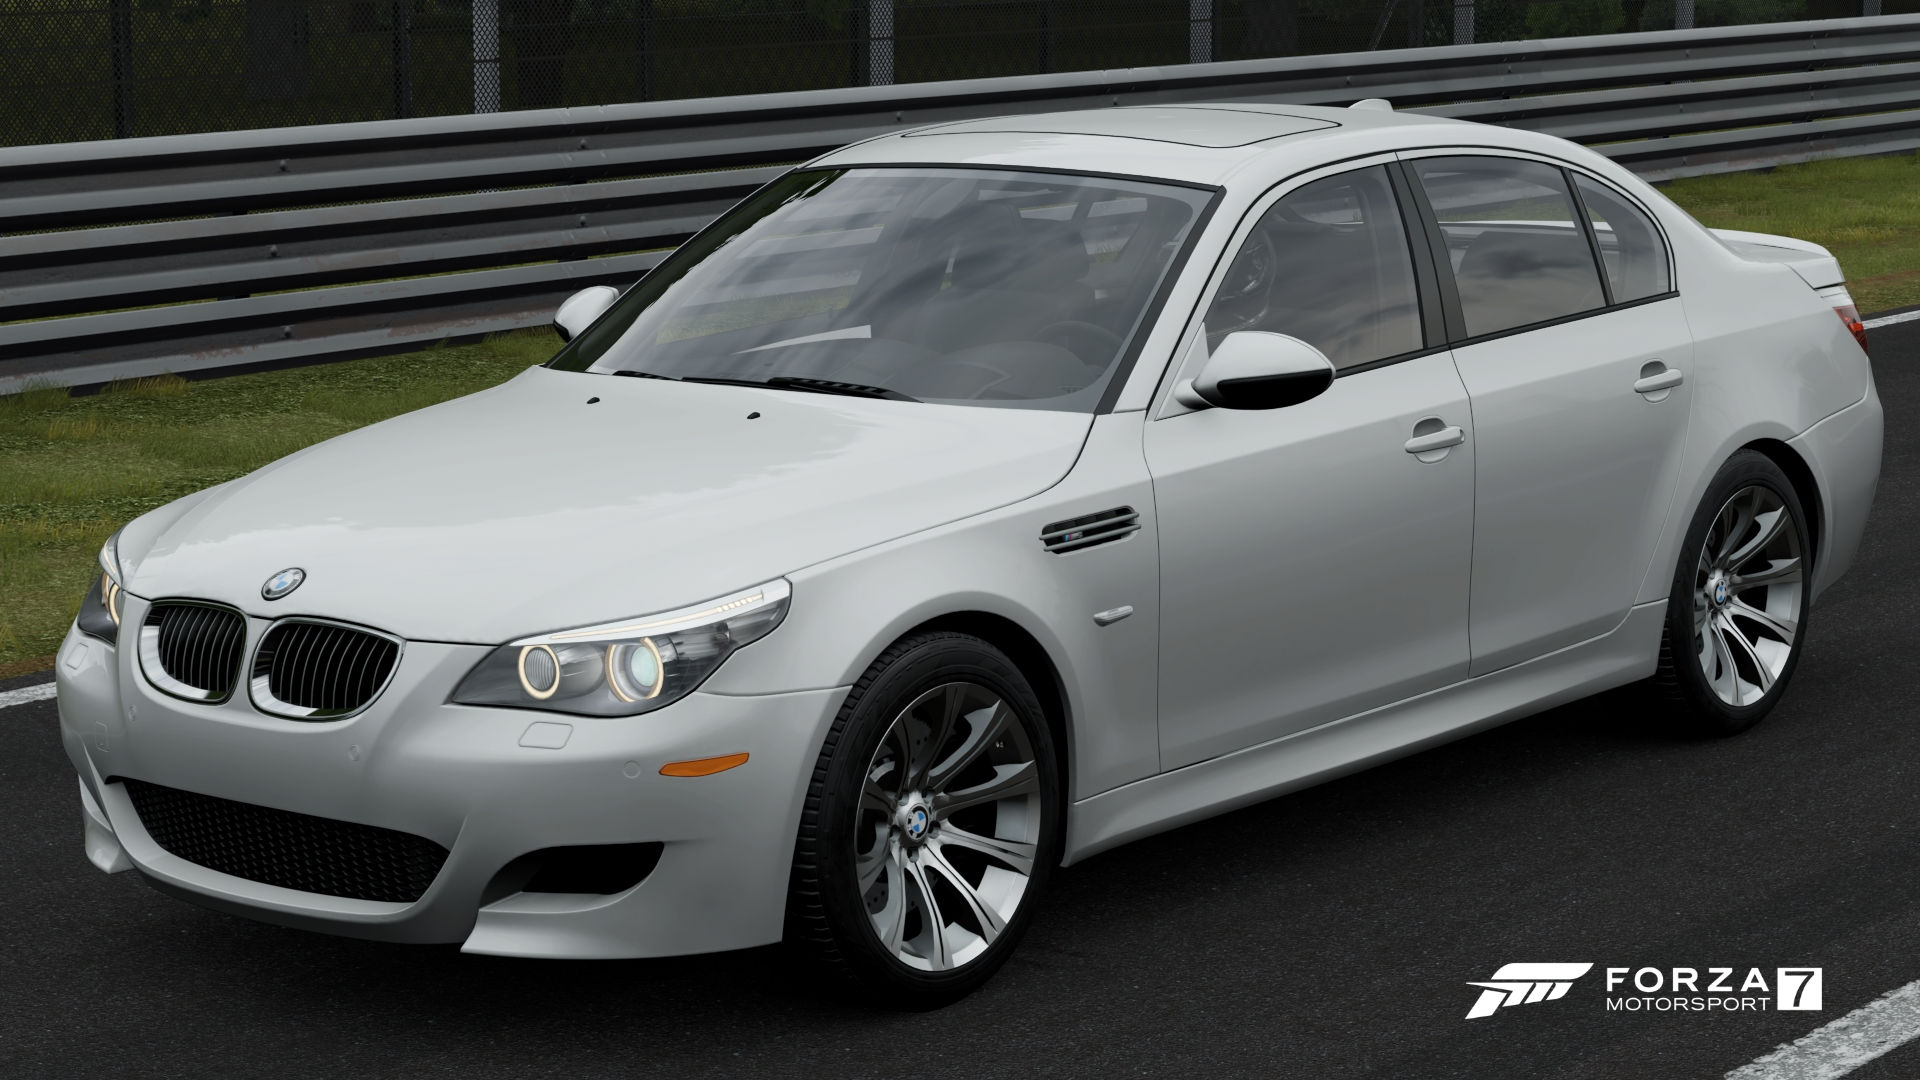 The 2009 BMW M5 In Forza Motorsport 7